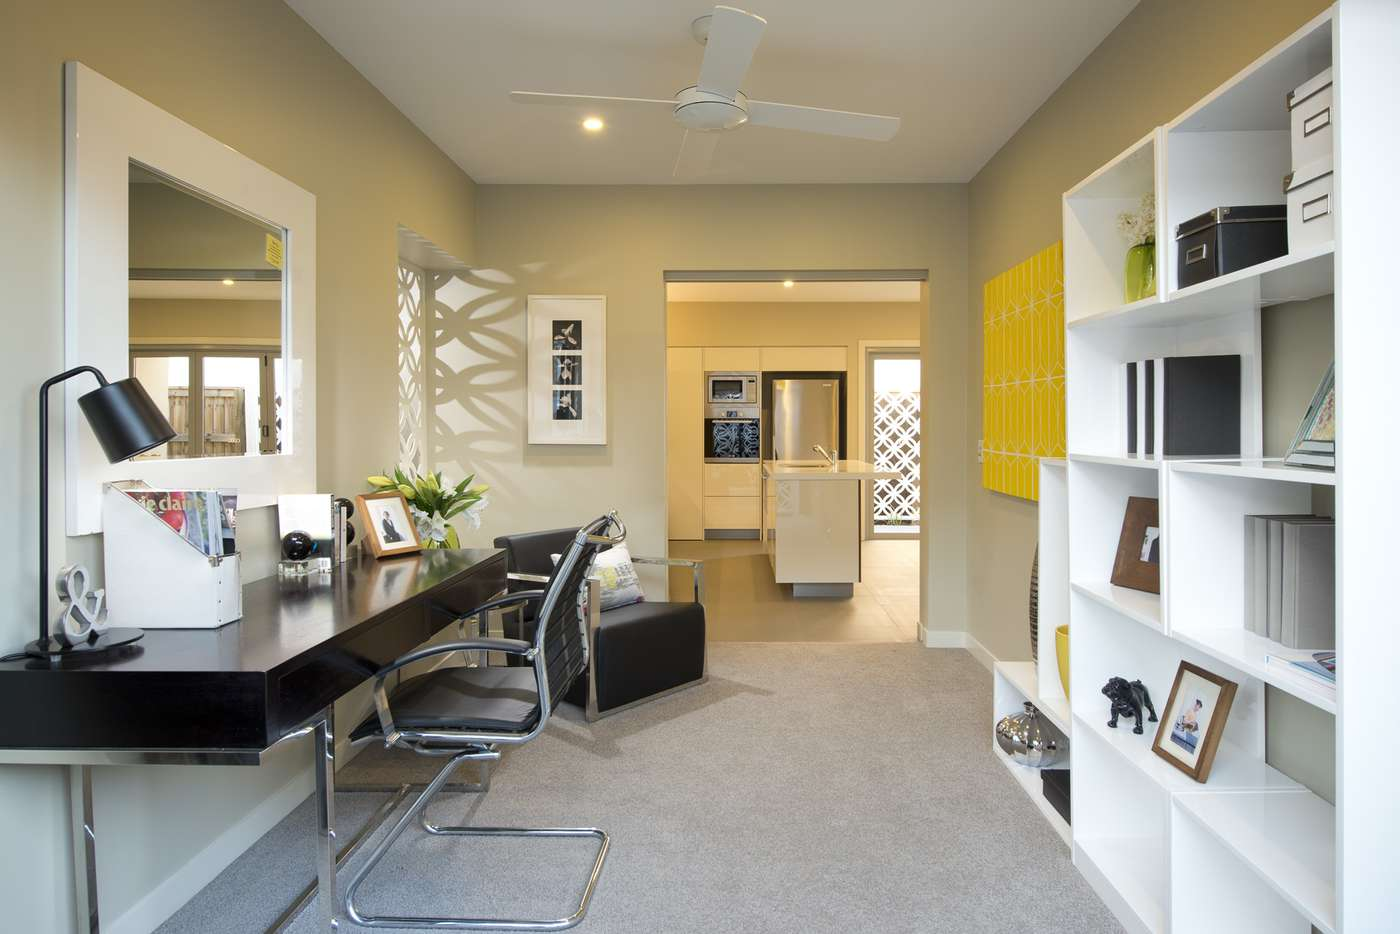 Sixth view of Homely house listing, 8 Azure St, Caloundra West QLD 4551